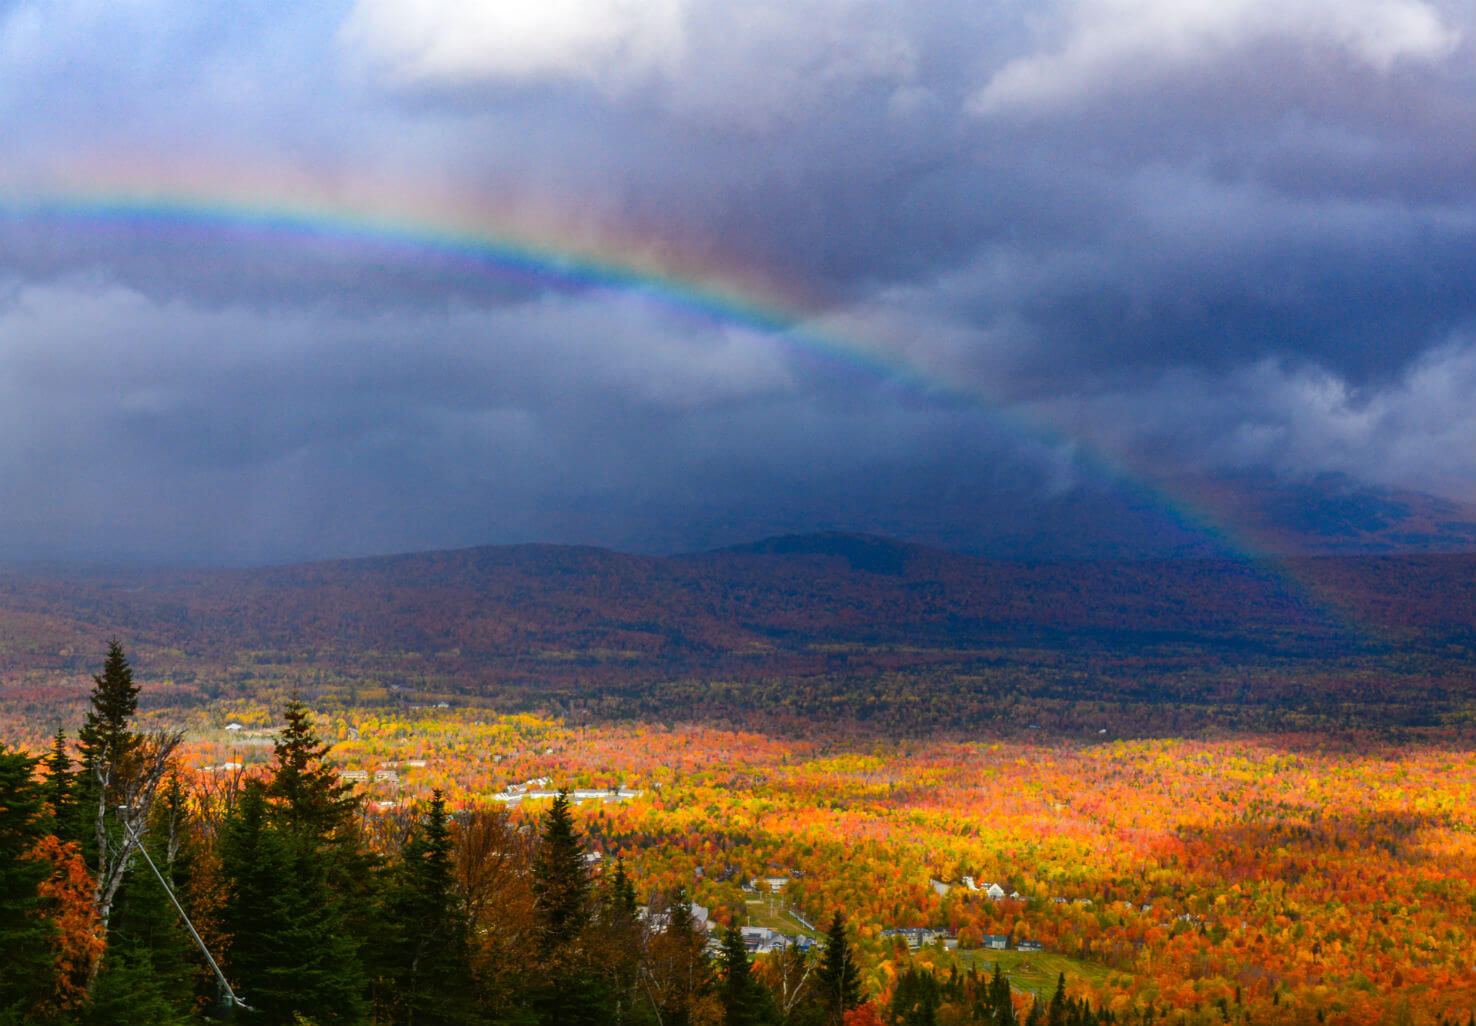 Rainbow over foliage on Mount Sugarloaf